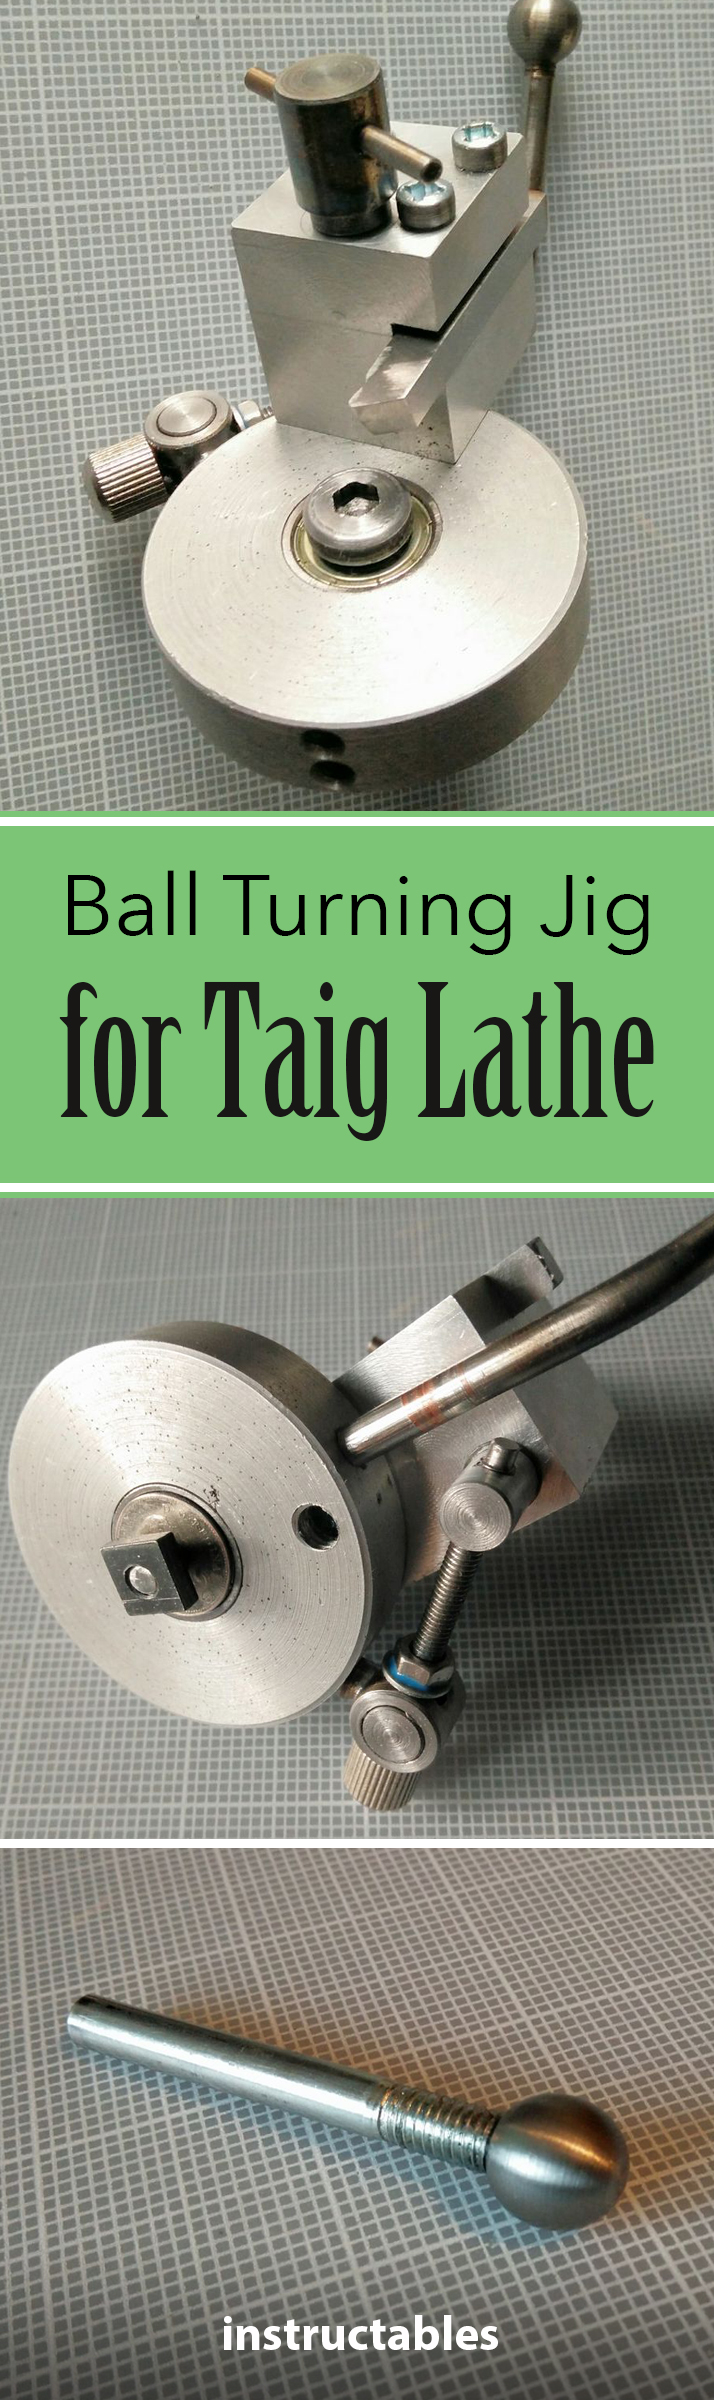 This jig is not difficult to make, quite easy to set up and use, and turns out balls beautifully.